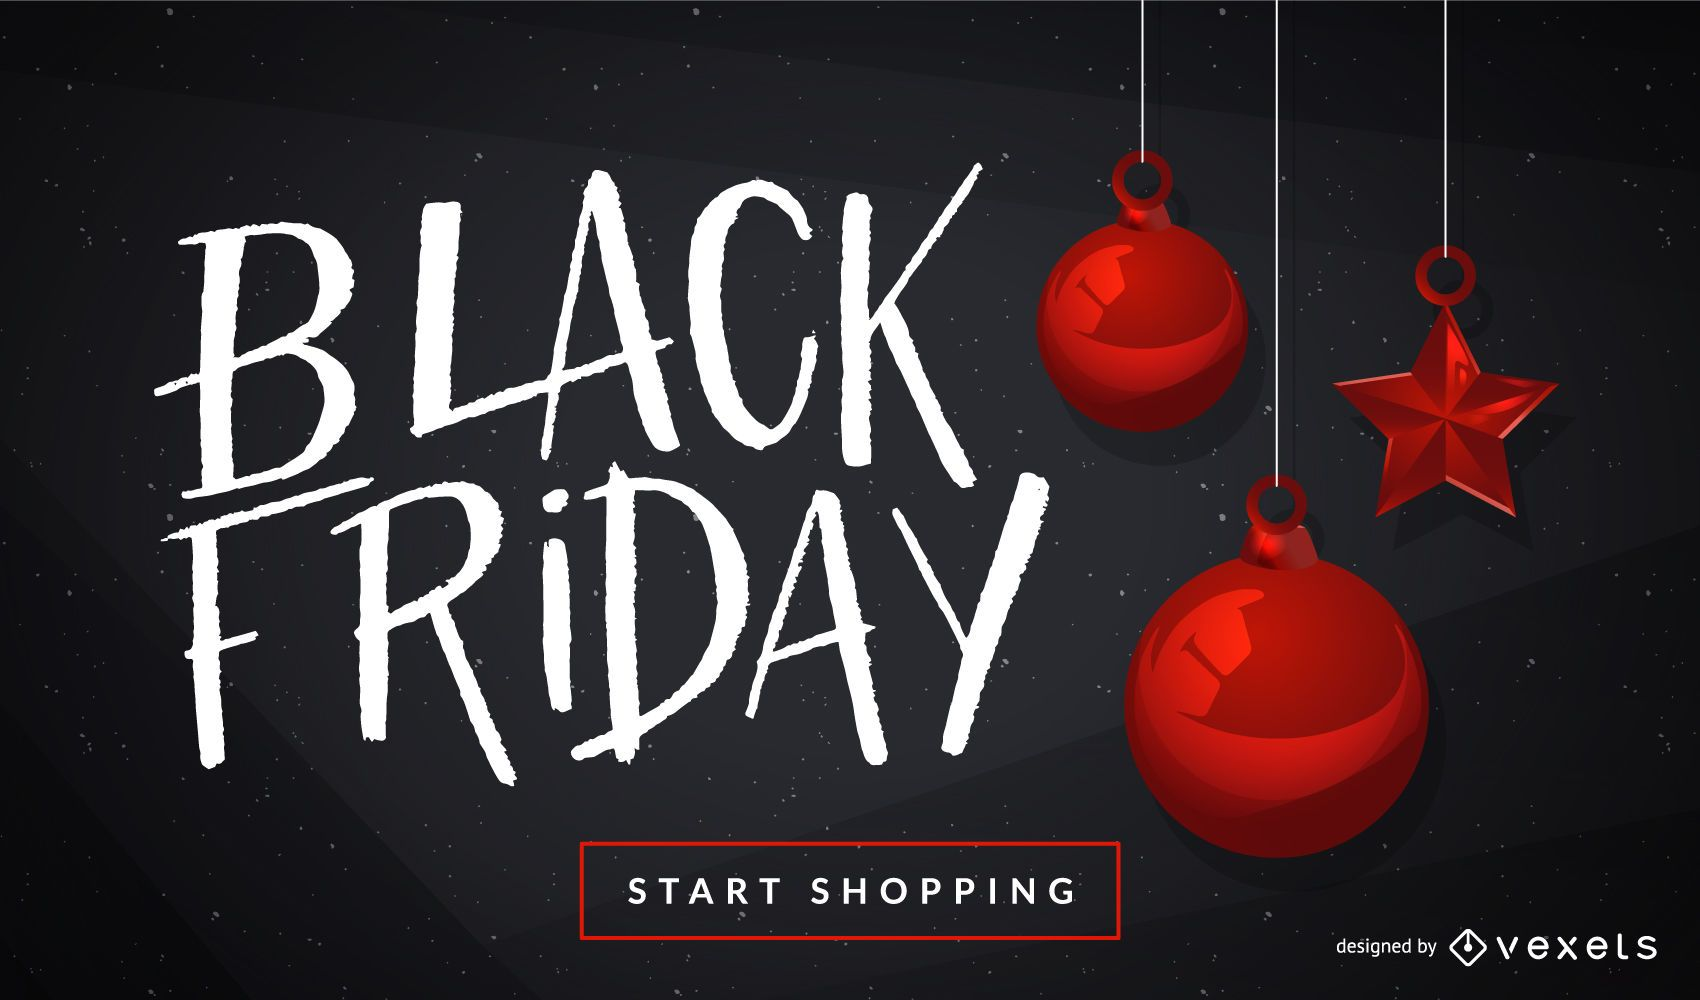 Black Friday Christmas Decorations.Black Friday Ornaments Design Vector Download